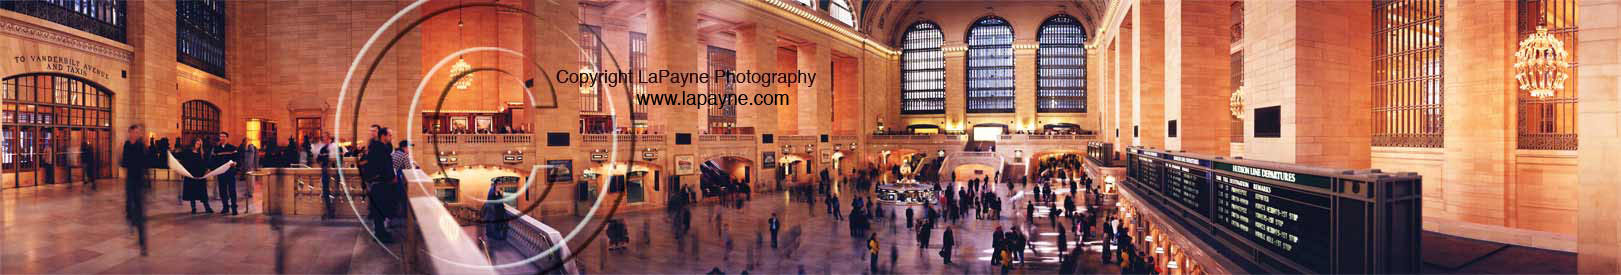 """The Grand Concourse"" at Grand Central Station 2"